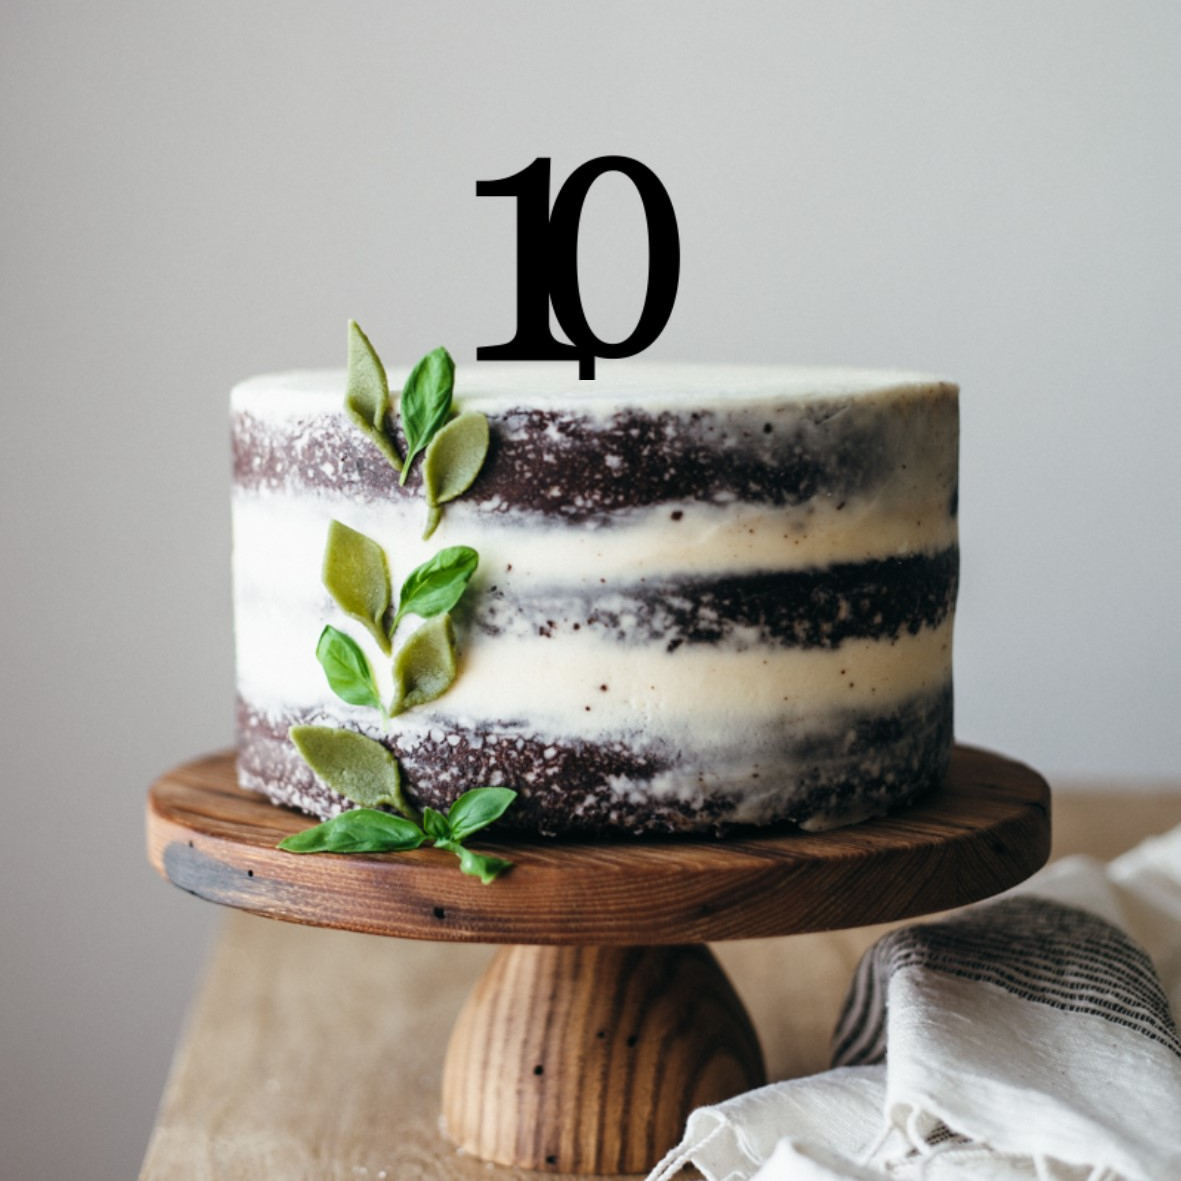 Quick Creations Cake Topper - 10